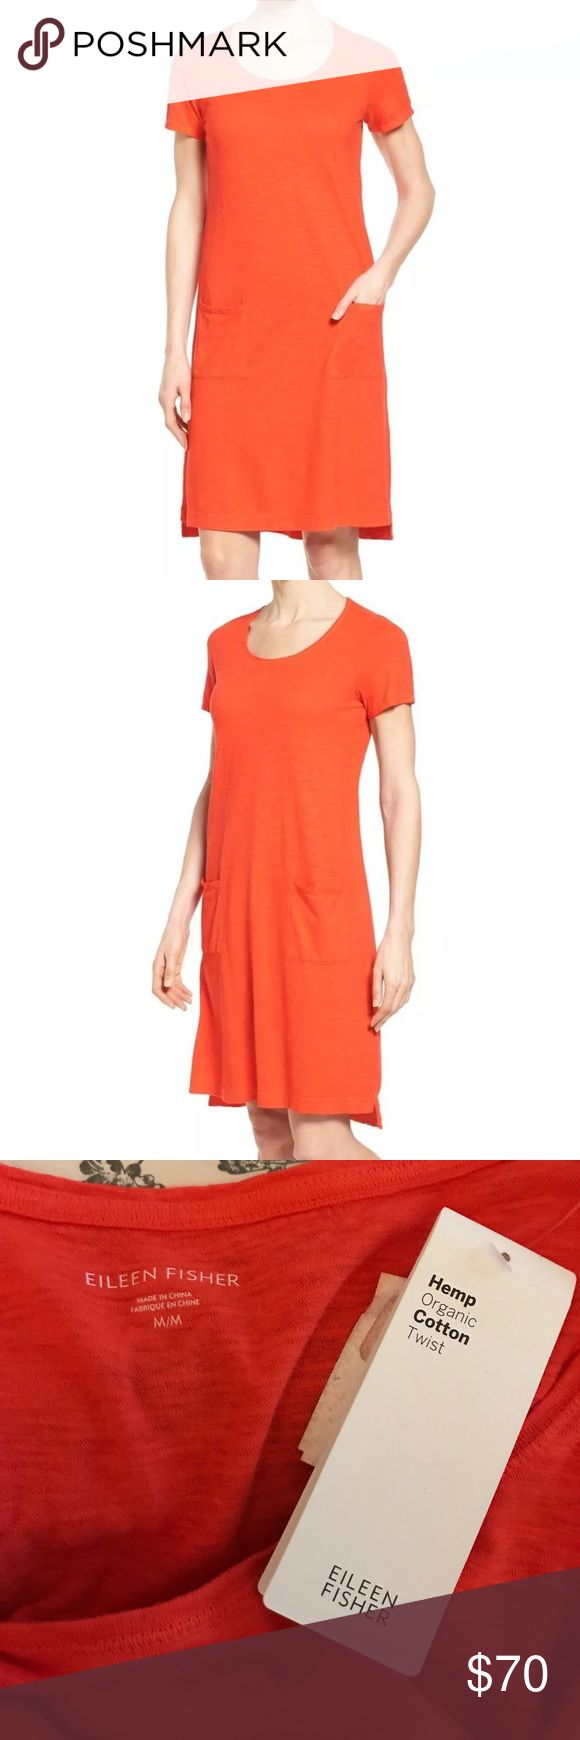 "NWT Eileen Fisher hemp organic cotton twist dress This is the ""Scoopneck Short Dress"". Cut loose for comfort, this trending t-shirt dress from Eileen Fisher Petites comes in an essential orange solid. Two front patch pockets and T-shirt styling define the laid back ease of a short, figure skimming shift cut from a slub-knit blend of hemp and cotton. Slips on over head. Scooped neck. Short sleeves. Vented step hem. A-line silhouette. Designed for an easy, classic fit. Unlined. Approximately…"